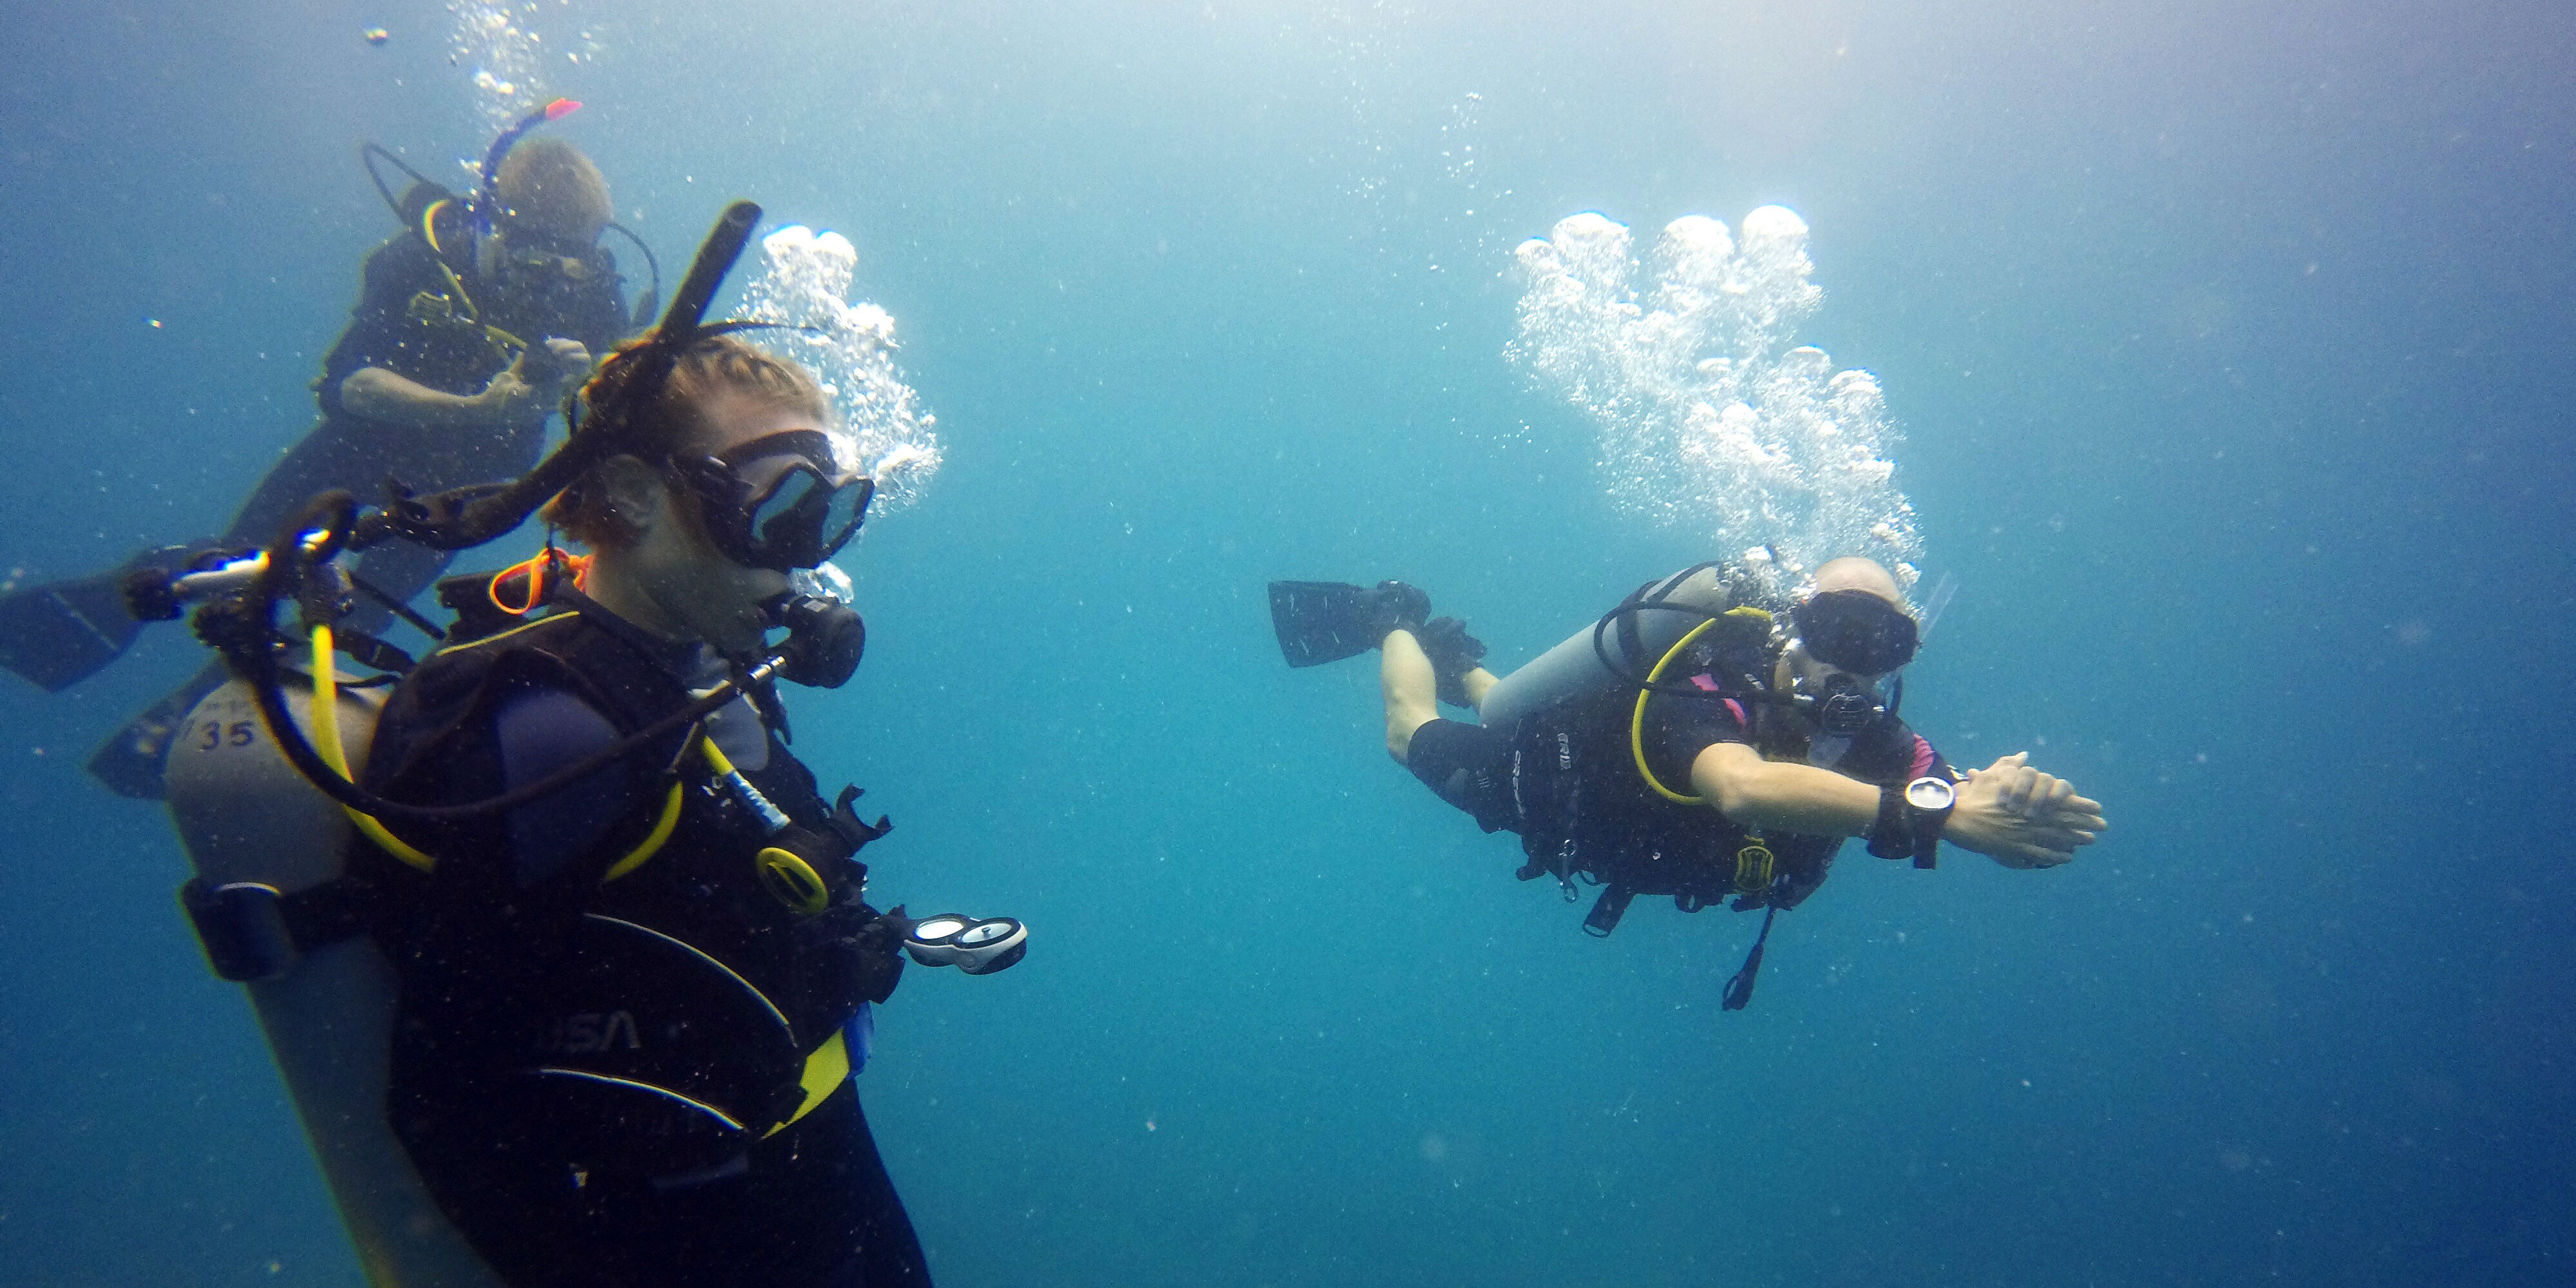 GVI participants practise diving skills. Learning a new skill like diving is one of the top reasons to take a career break.